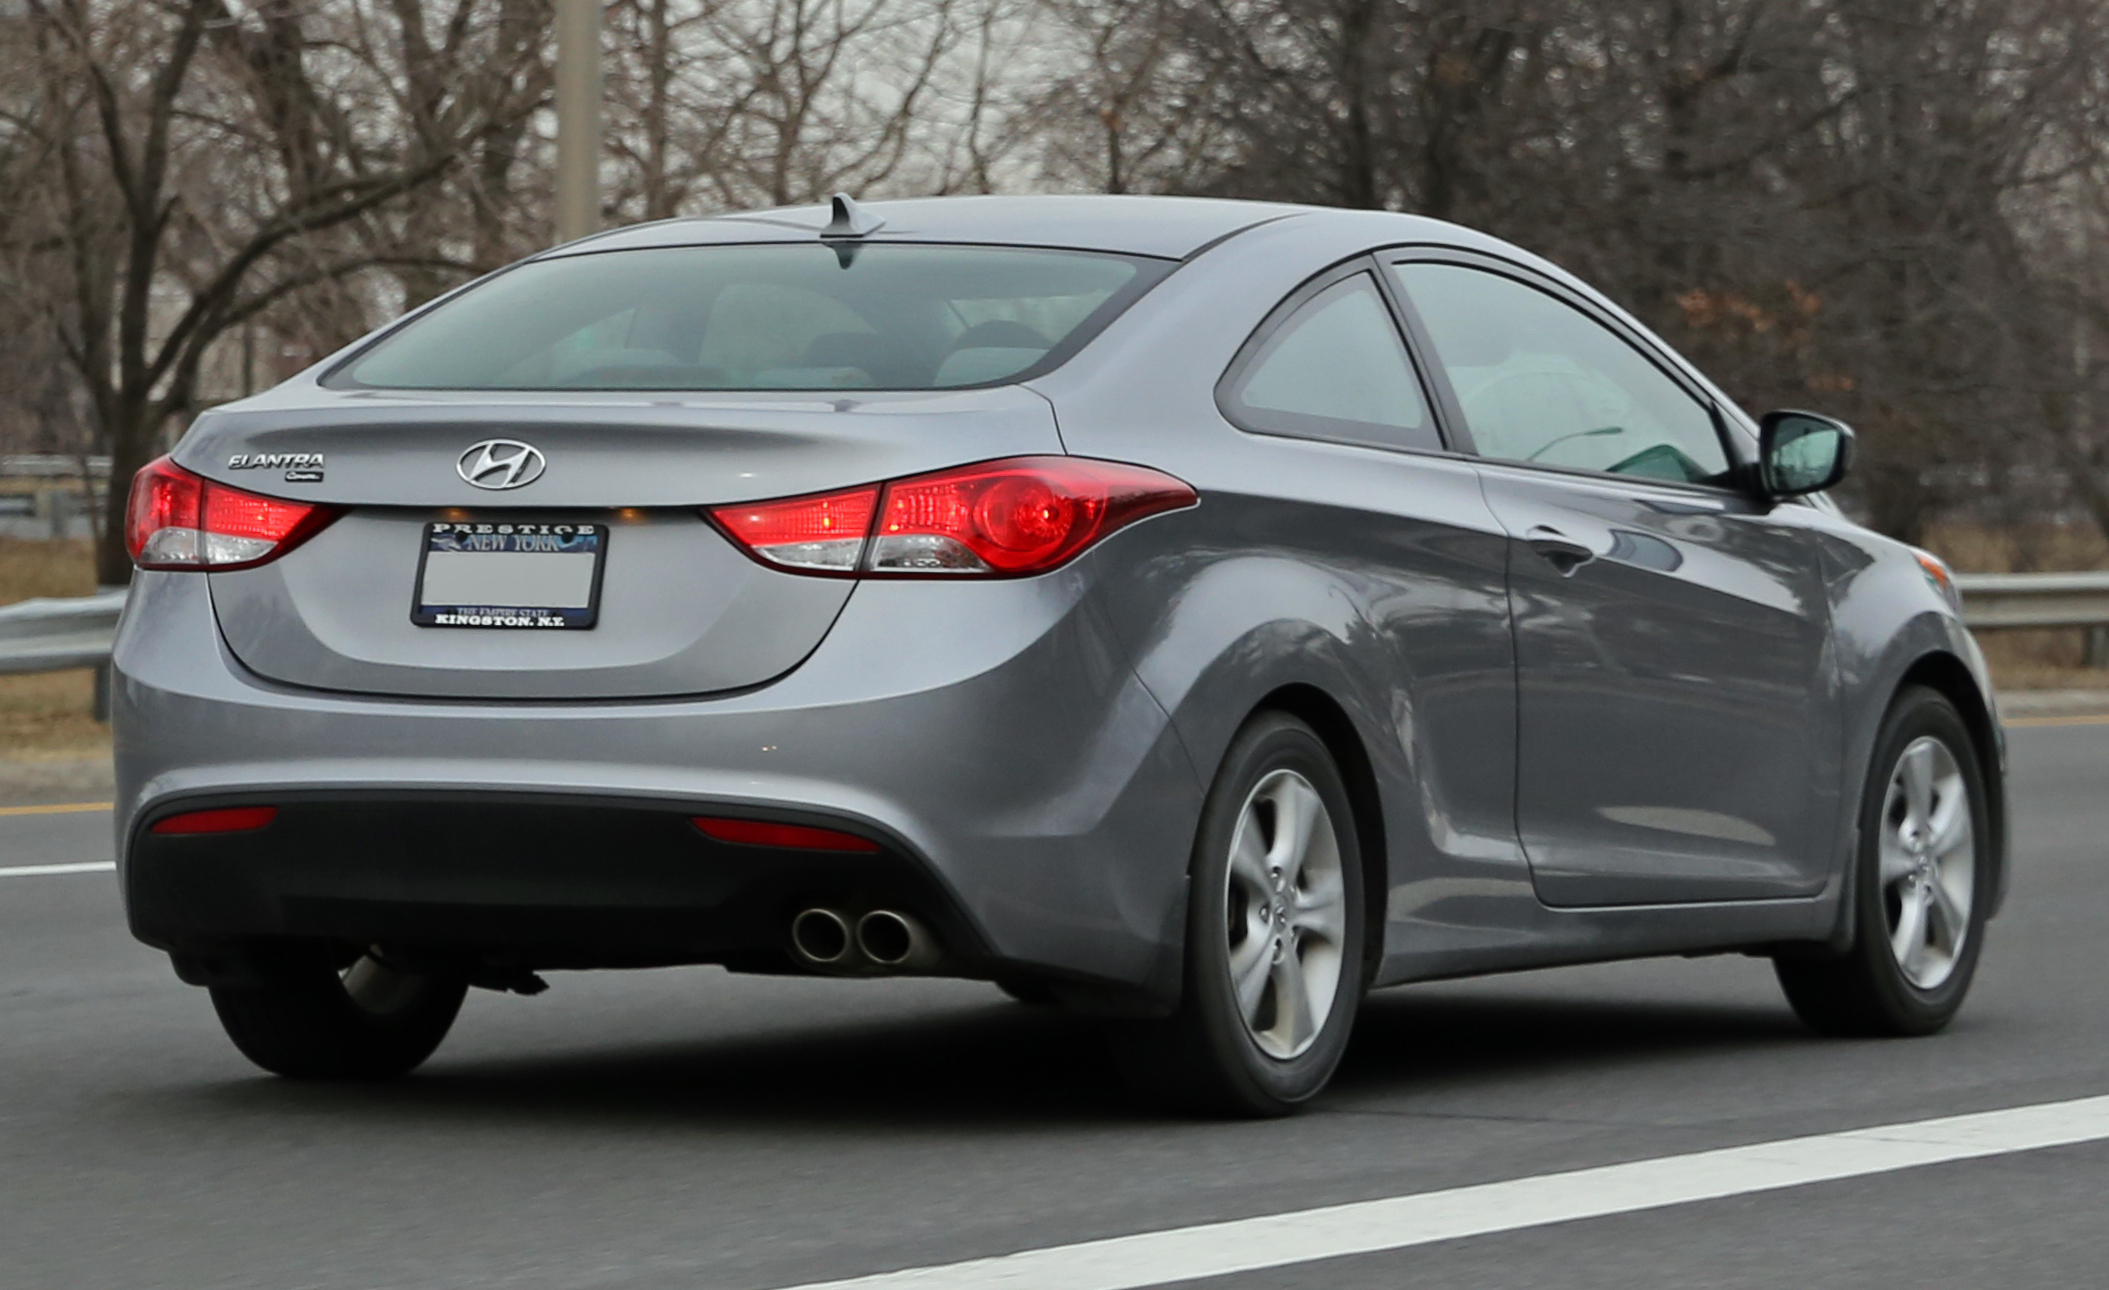 Hyundai Elantra Coupe >> File 2014 Hyundai Elantra Coupe On I 95 Jpg Wikimedia Commons